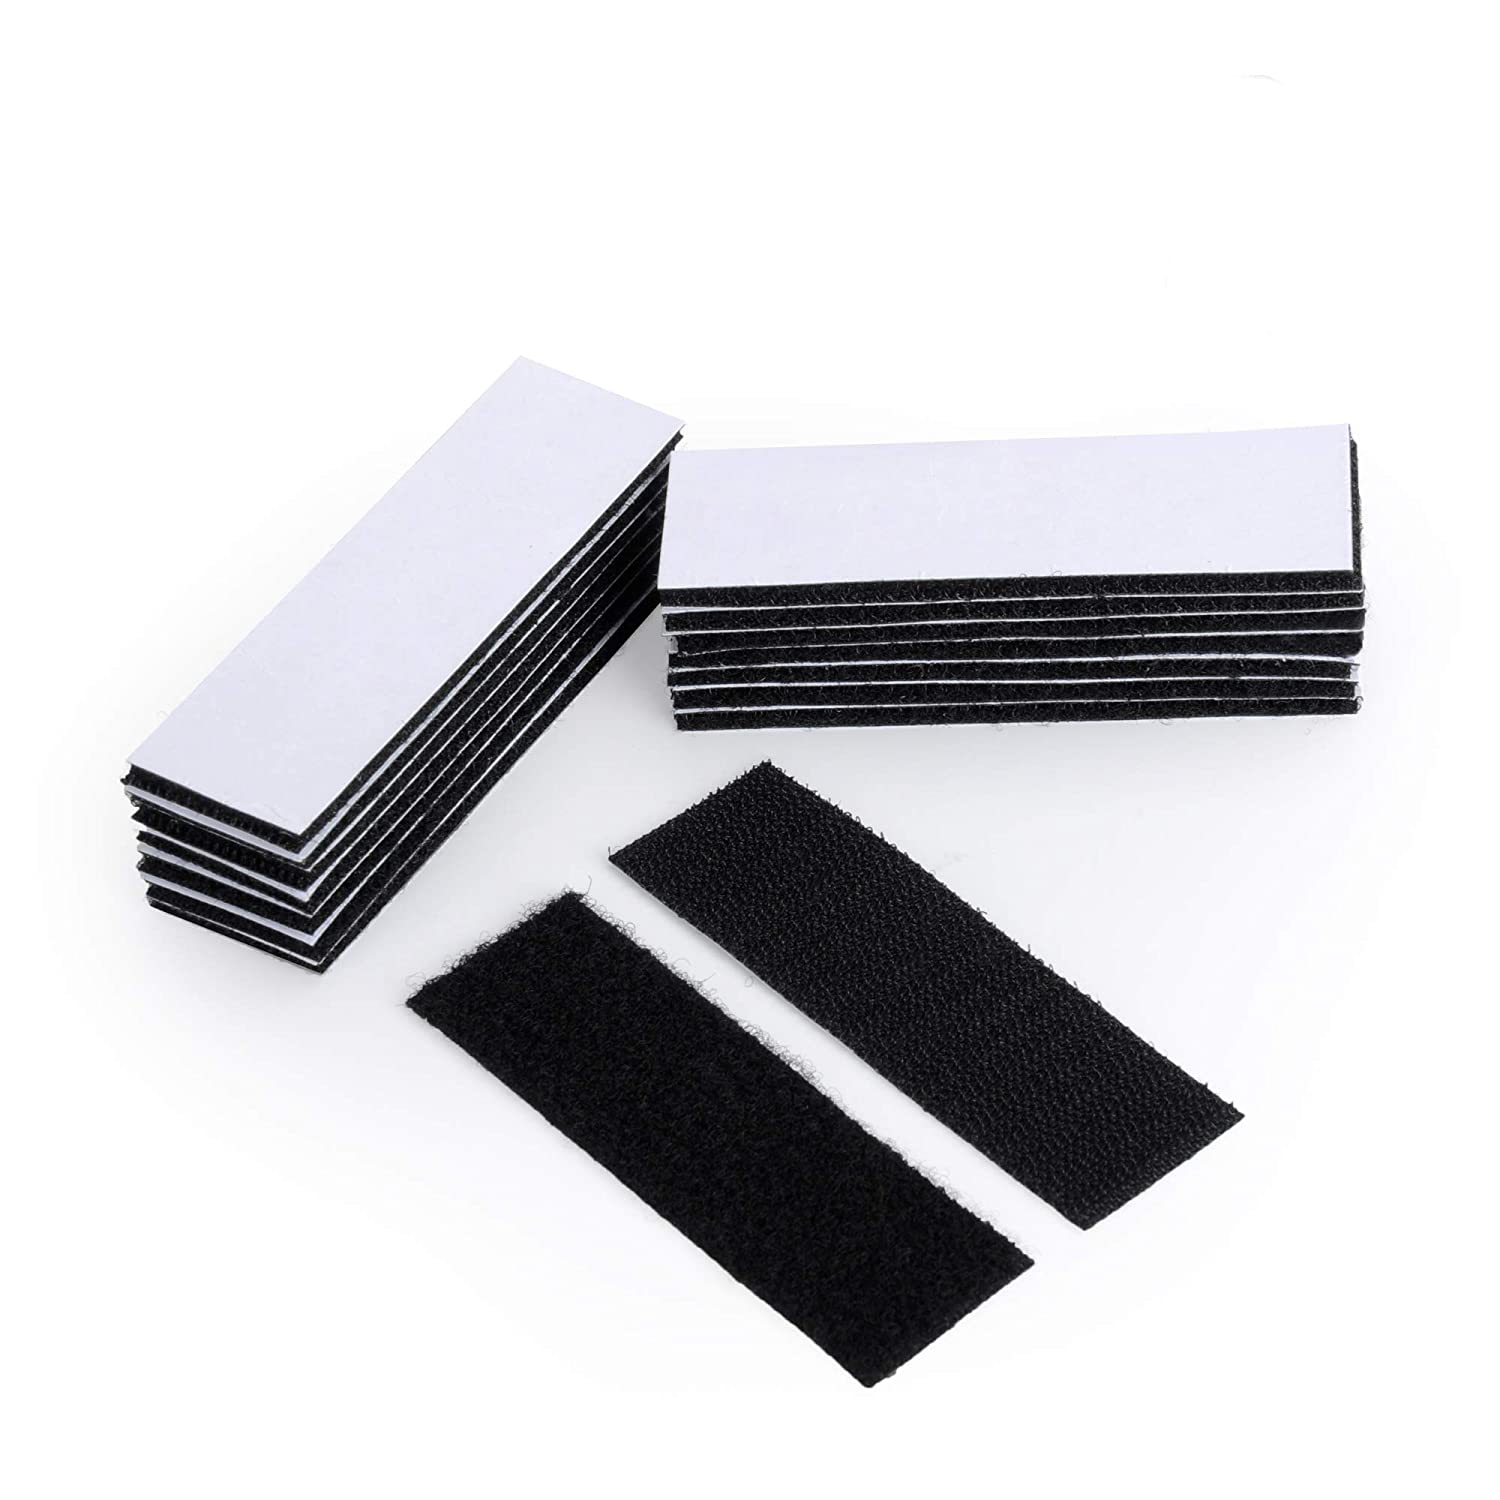 12 Pack Heavy Duty Picture Hanging Strips Double Sided Sticky Back Pads for Rug Carpet Mat Gripping /& Tool Mounting 1.2x4Inch White Strong Adhesive BRAVESHINE Hook and Loop Tape